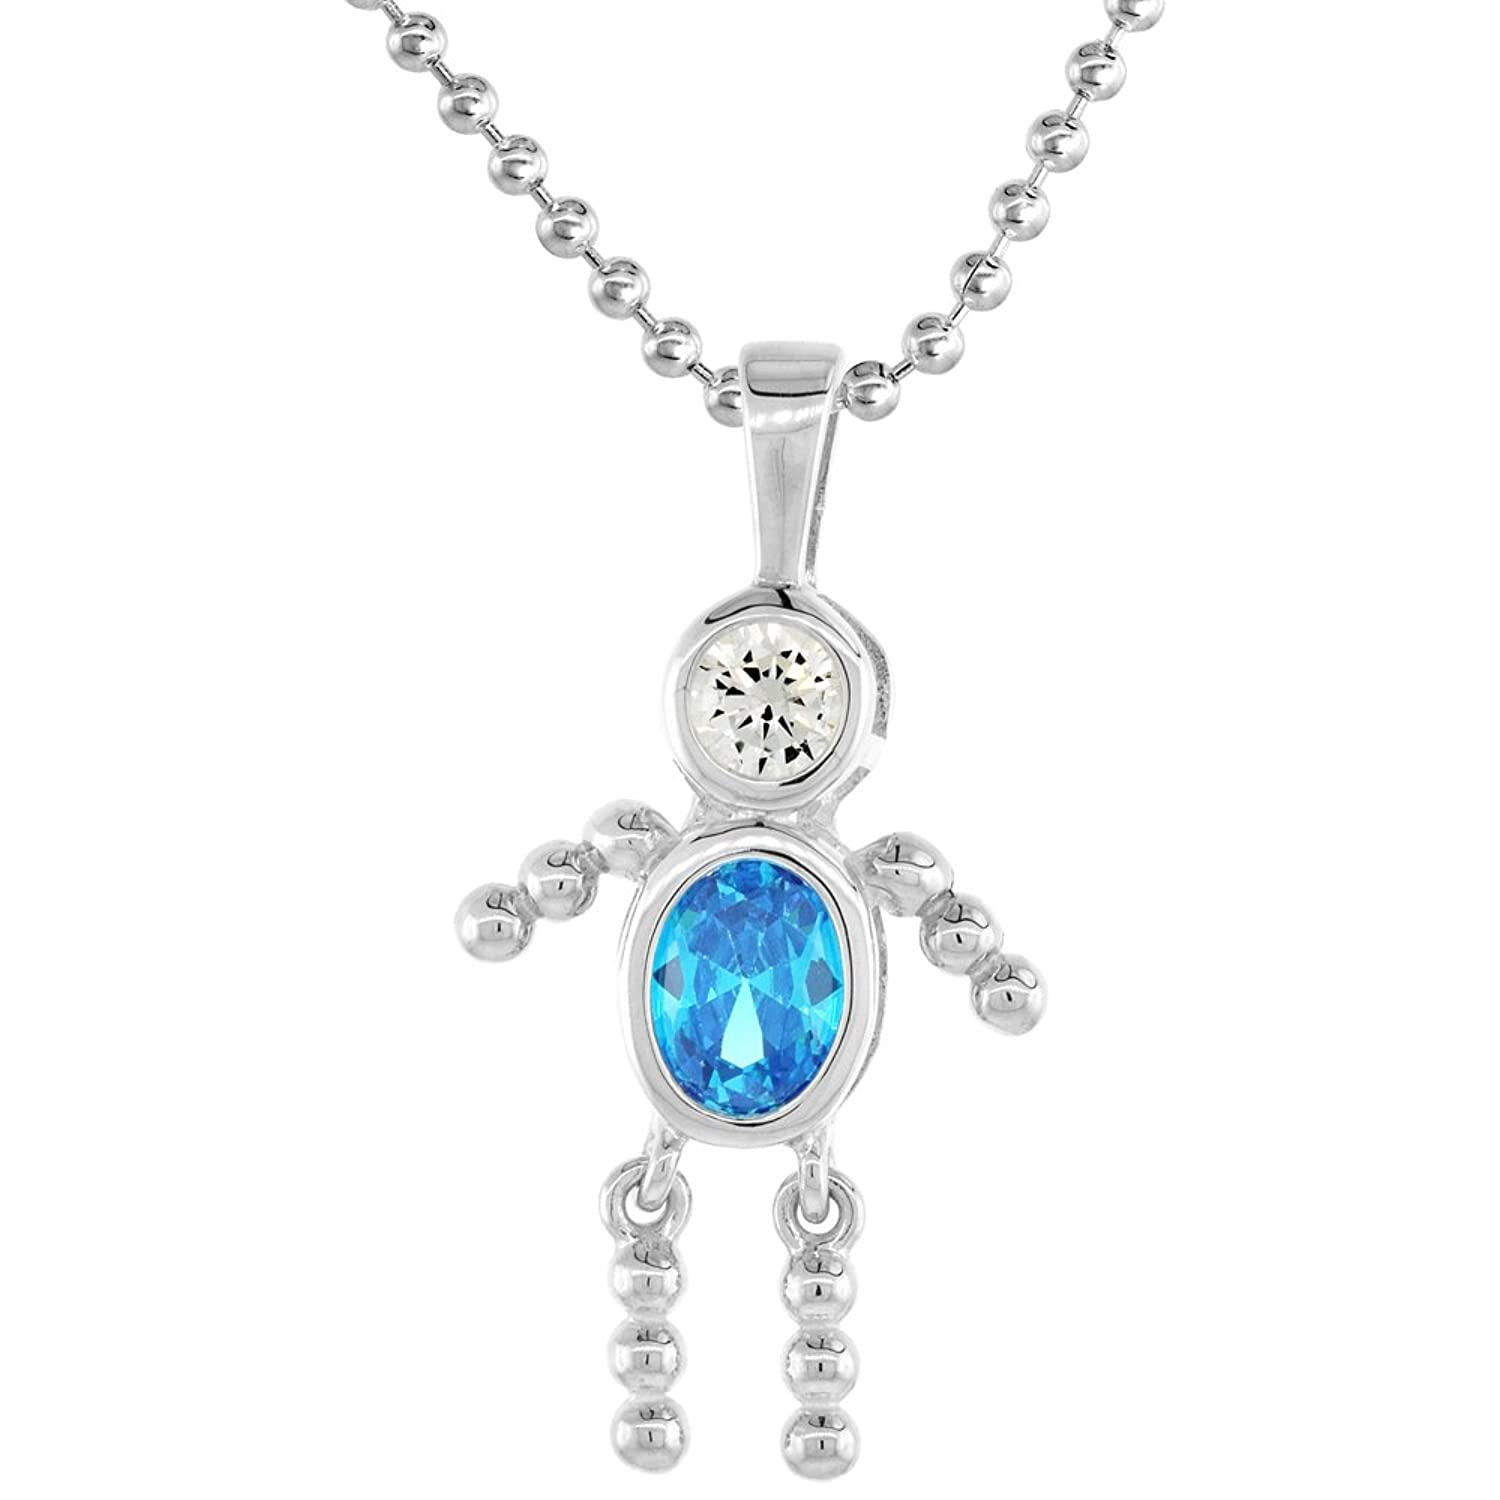 grandkid mother necklace birthstone products simple jewelry s natural danique qokf il fullxfull custom cascading